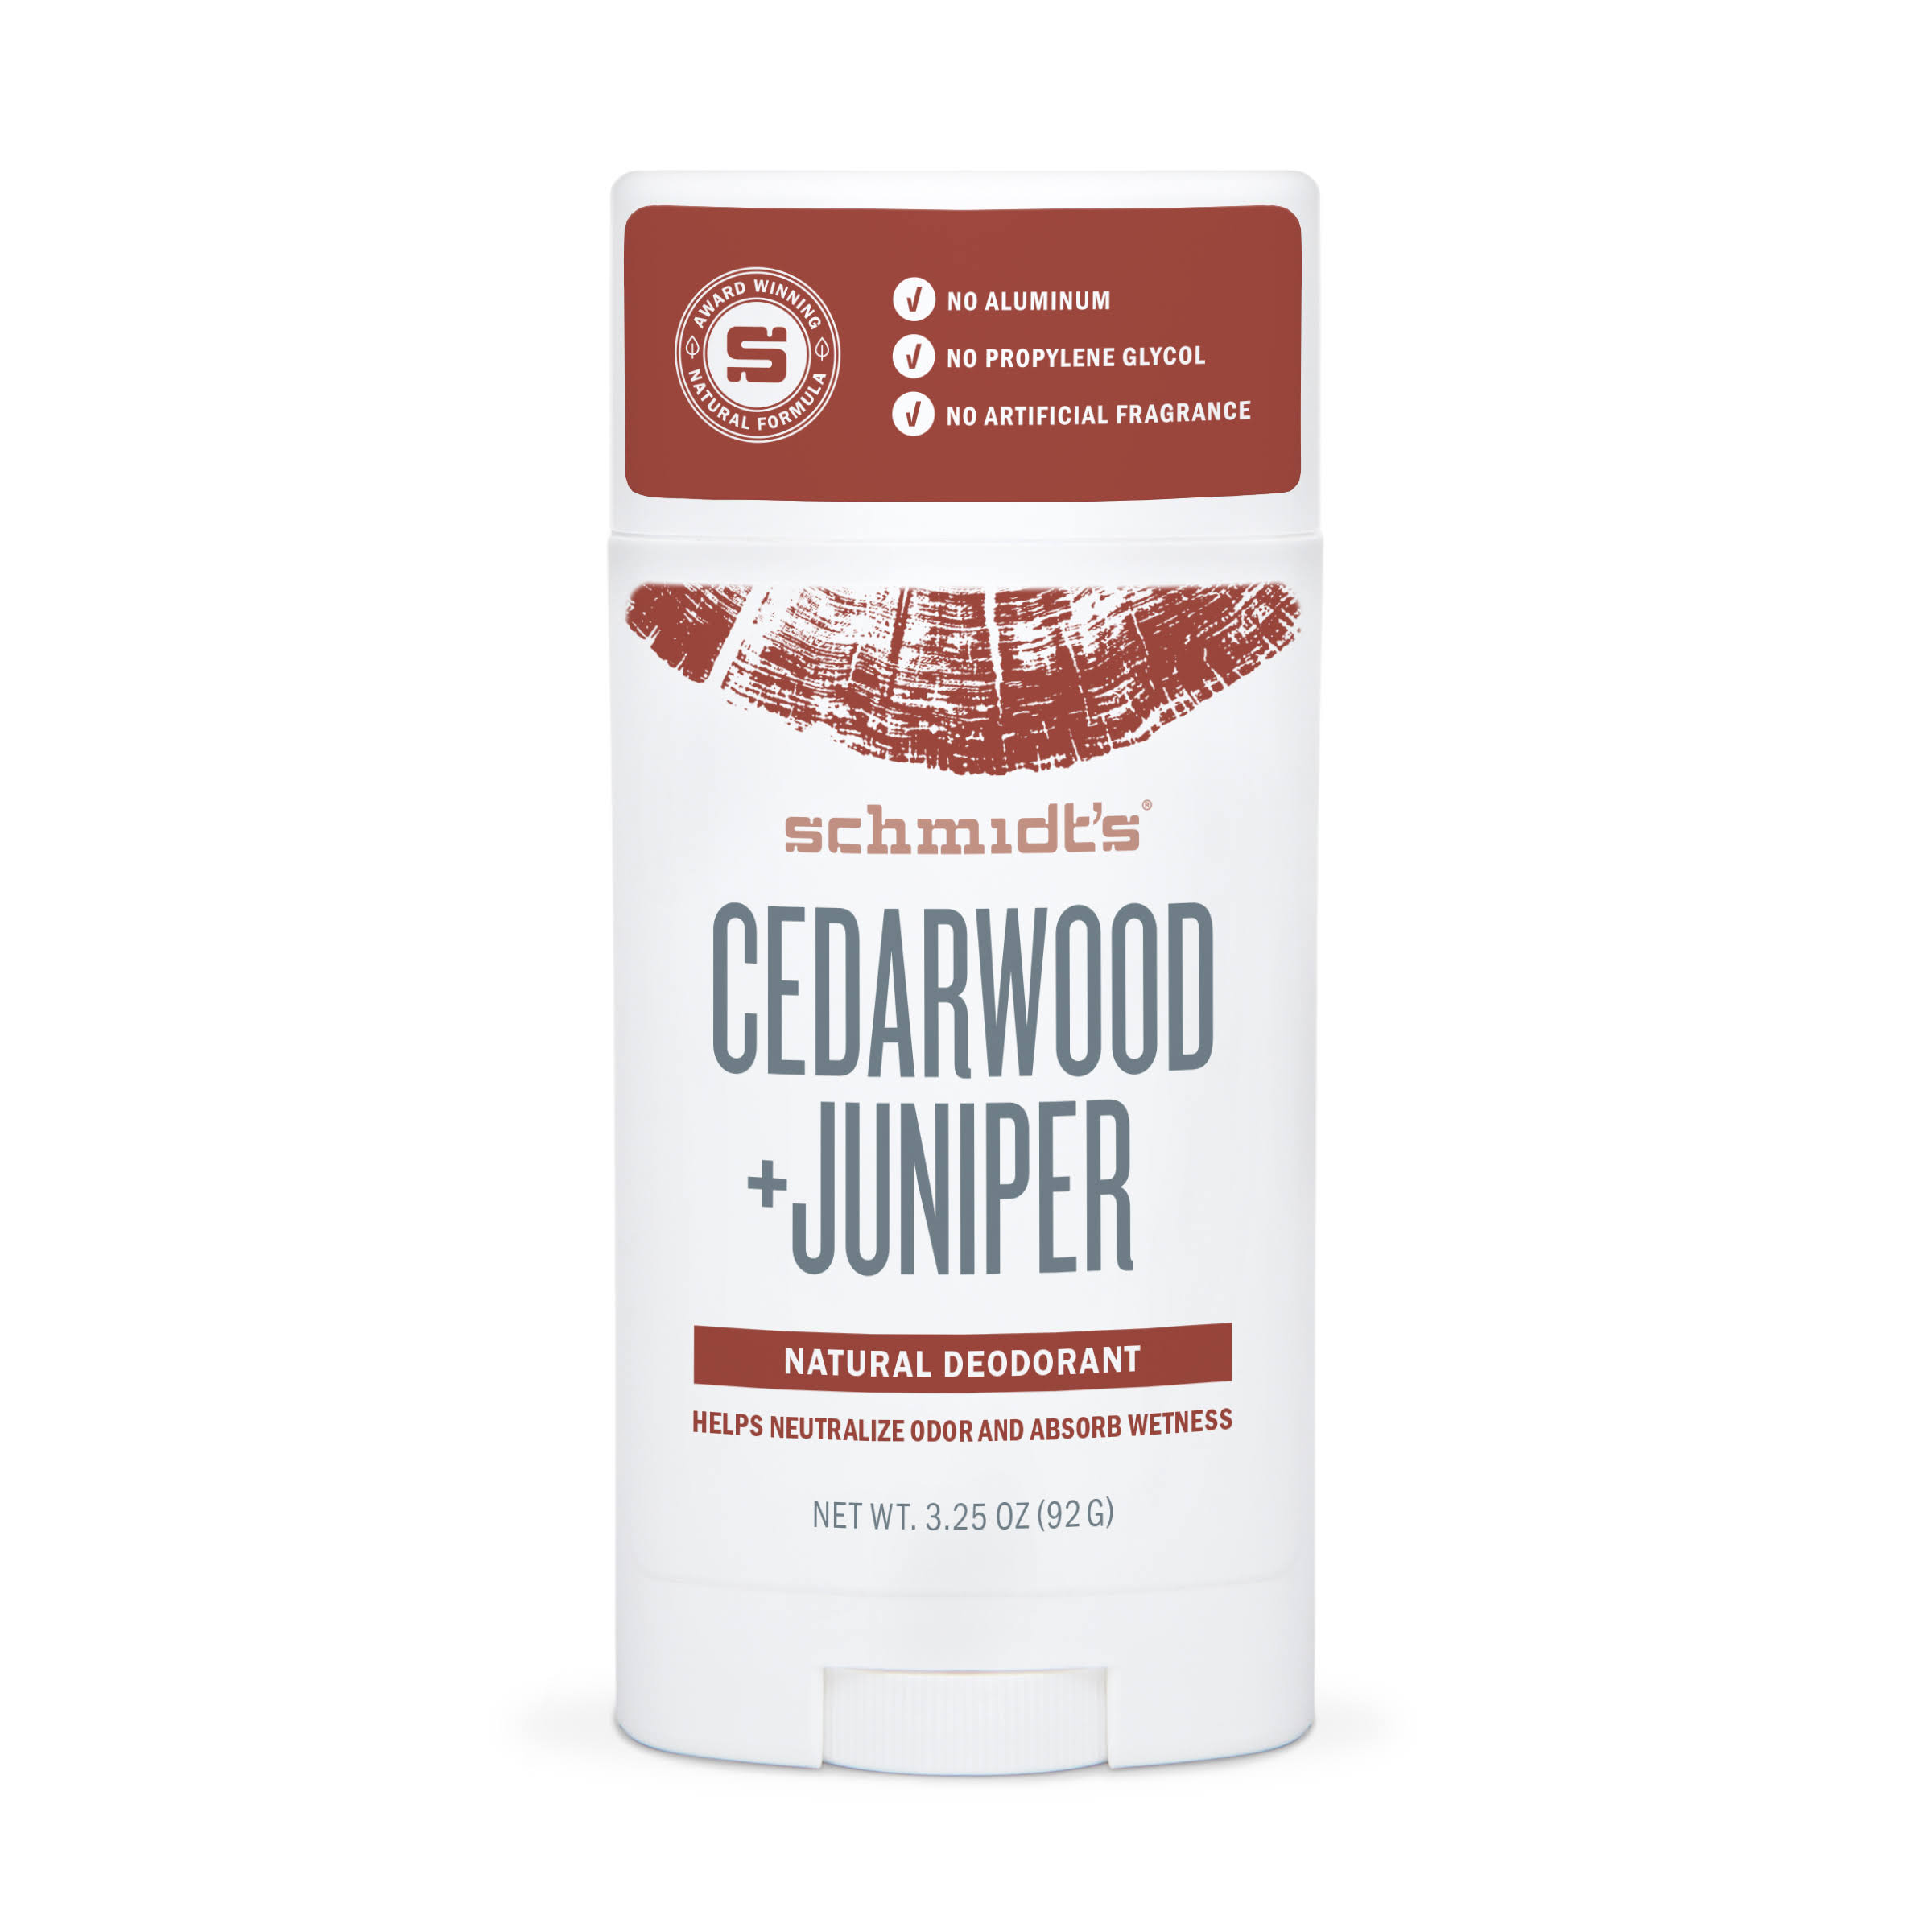 Schmidt's Natural Deodorant Stick - Cedarwood & Juniper, 92g